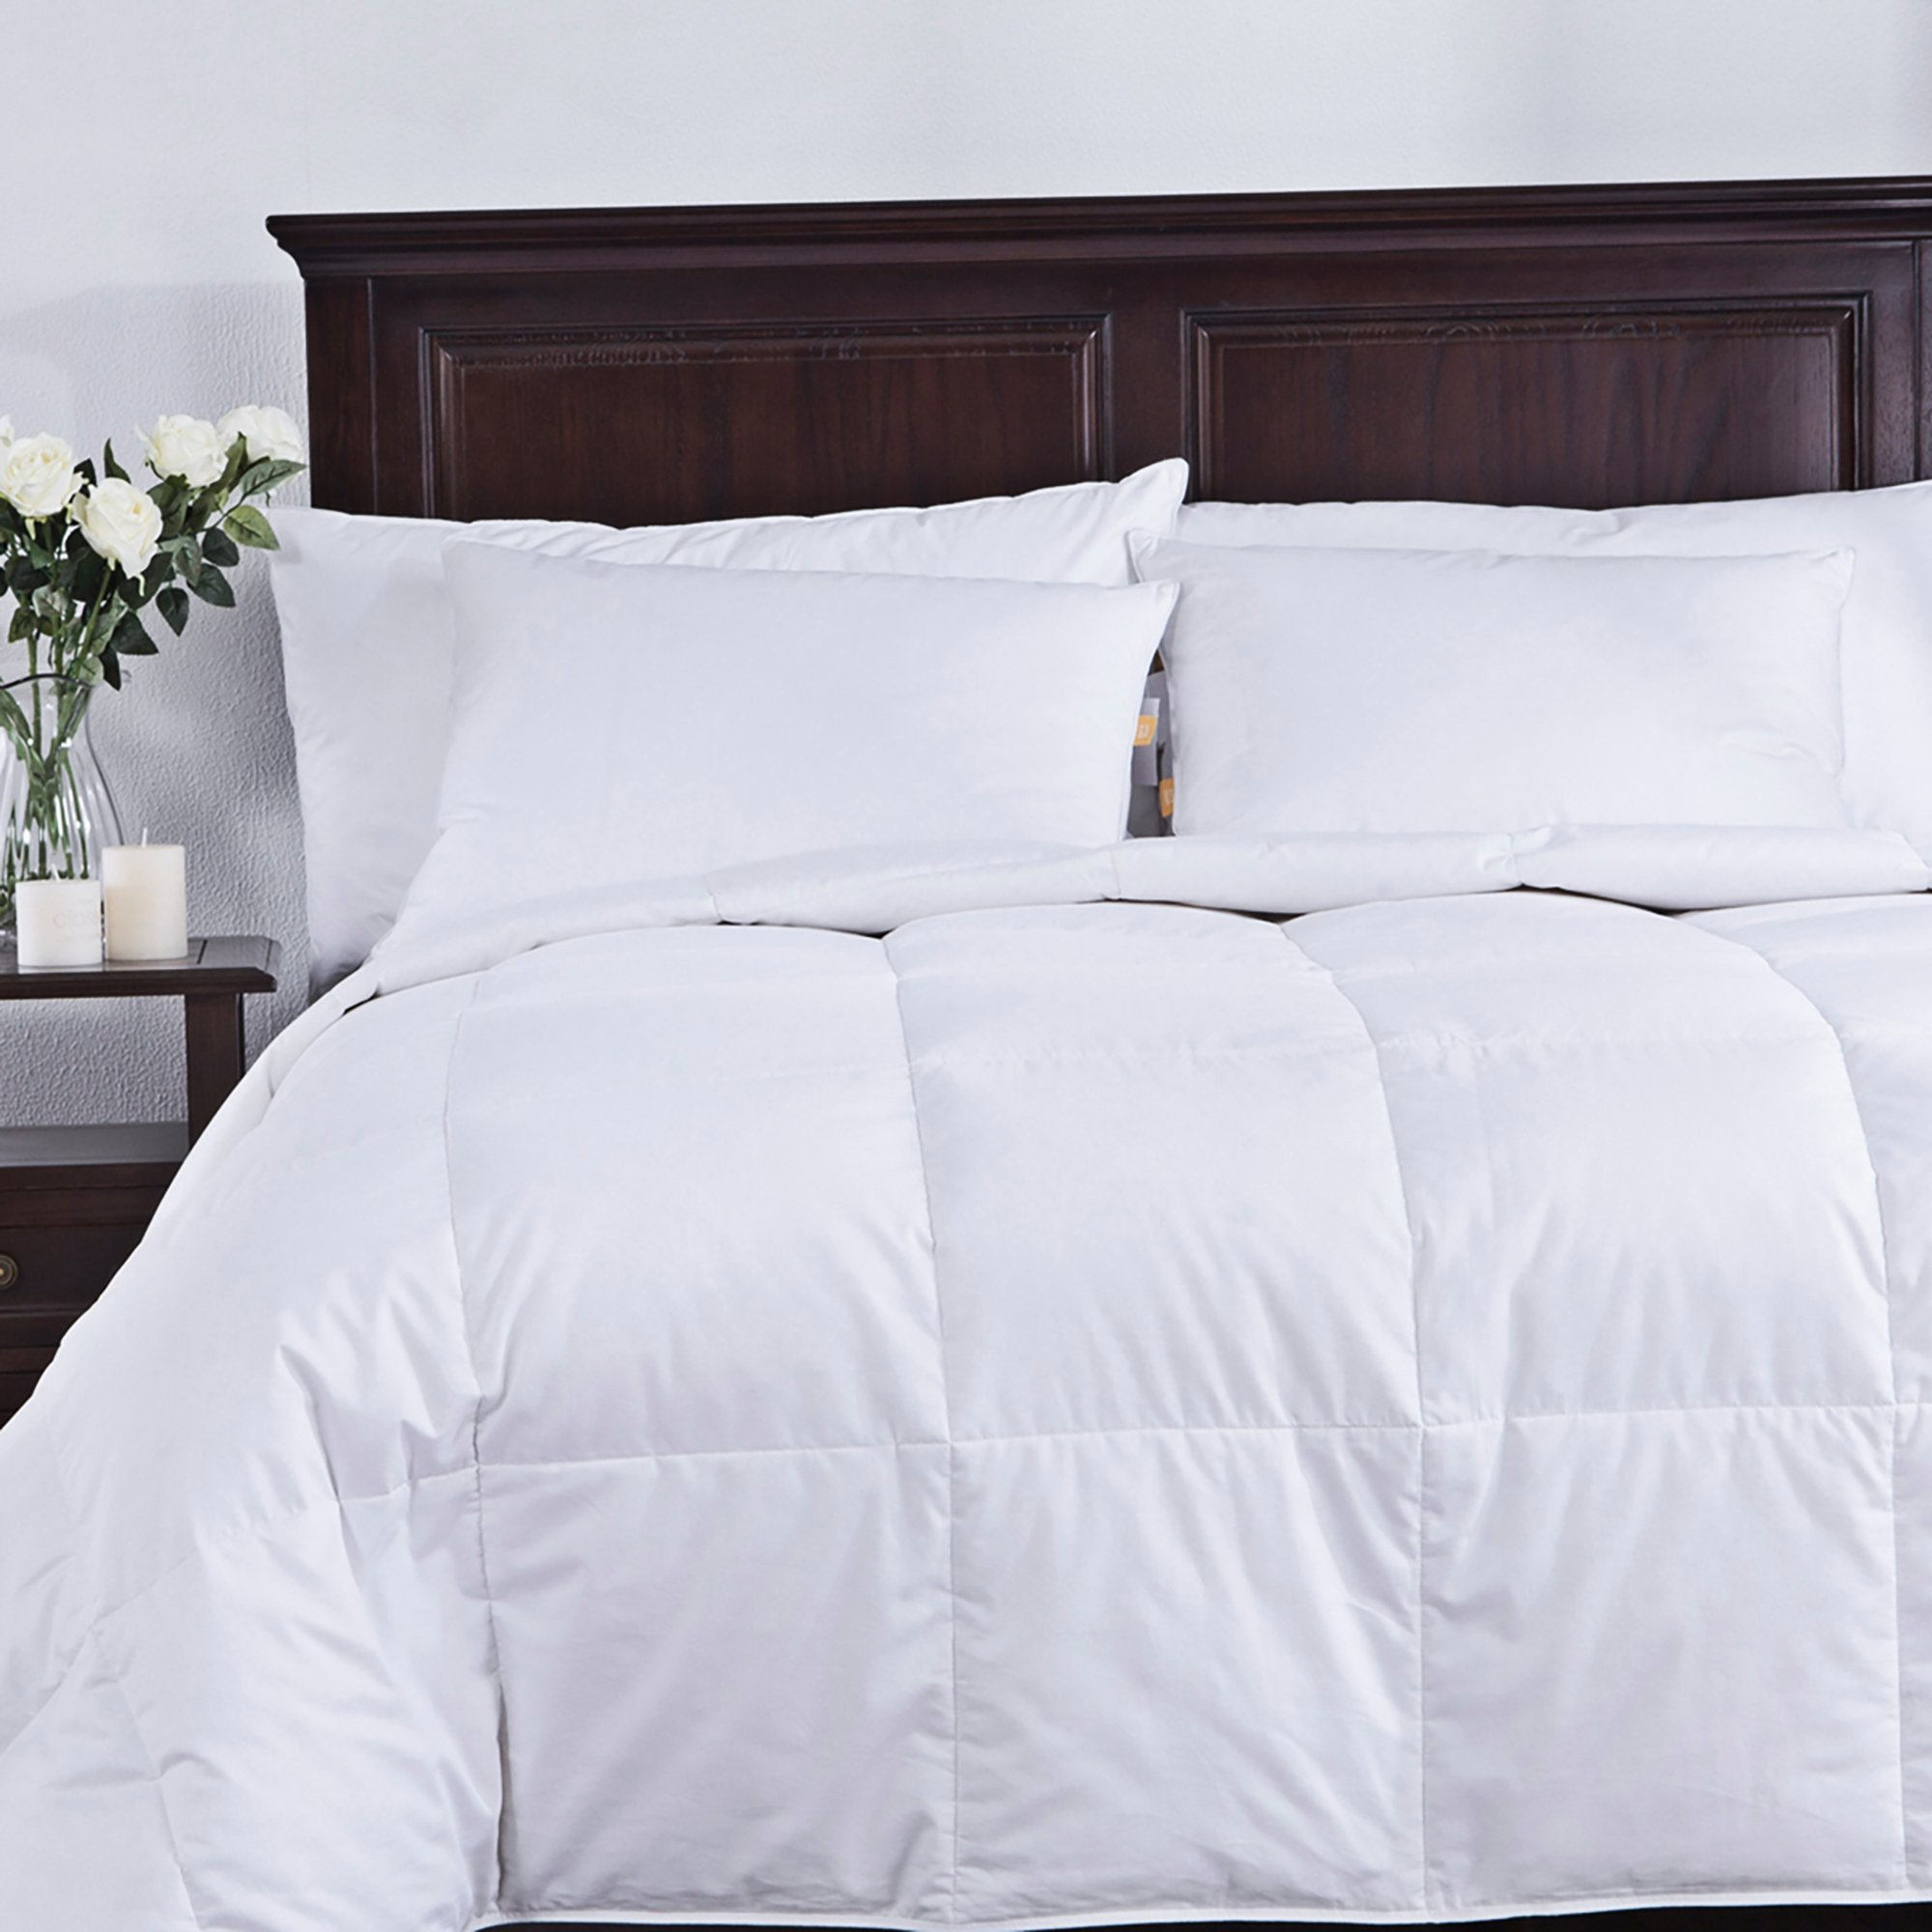 puredown Lightweight White Goose Down Comforter Duvet Insert 300 Thread Count 100% Cotton Fabric 600 Fill Power Down Down Conforter, Full/Queen, by puredown (Image #7)